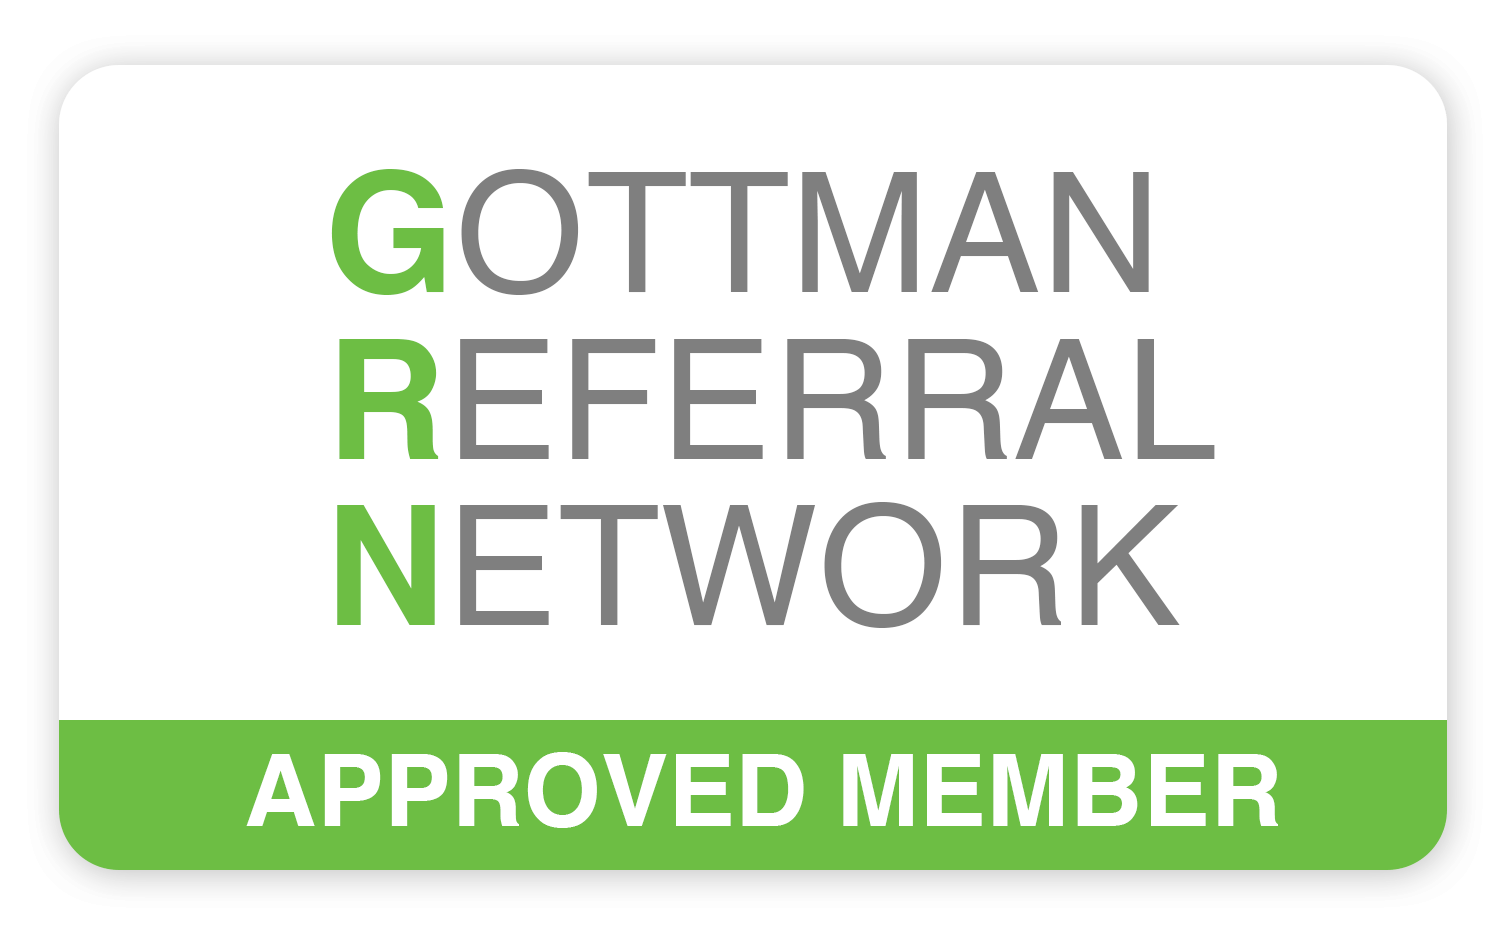 Gabriel  Chernoff's profile on the Gottman Referral Network